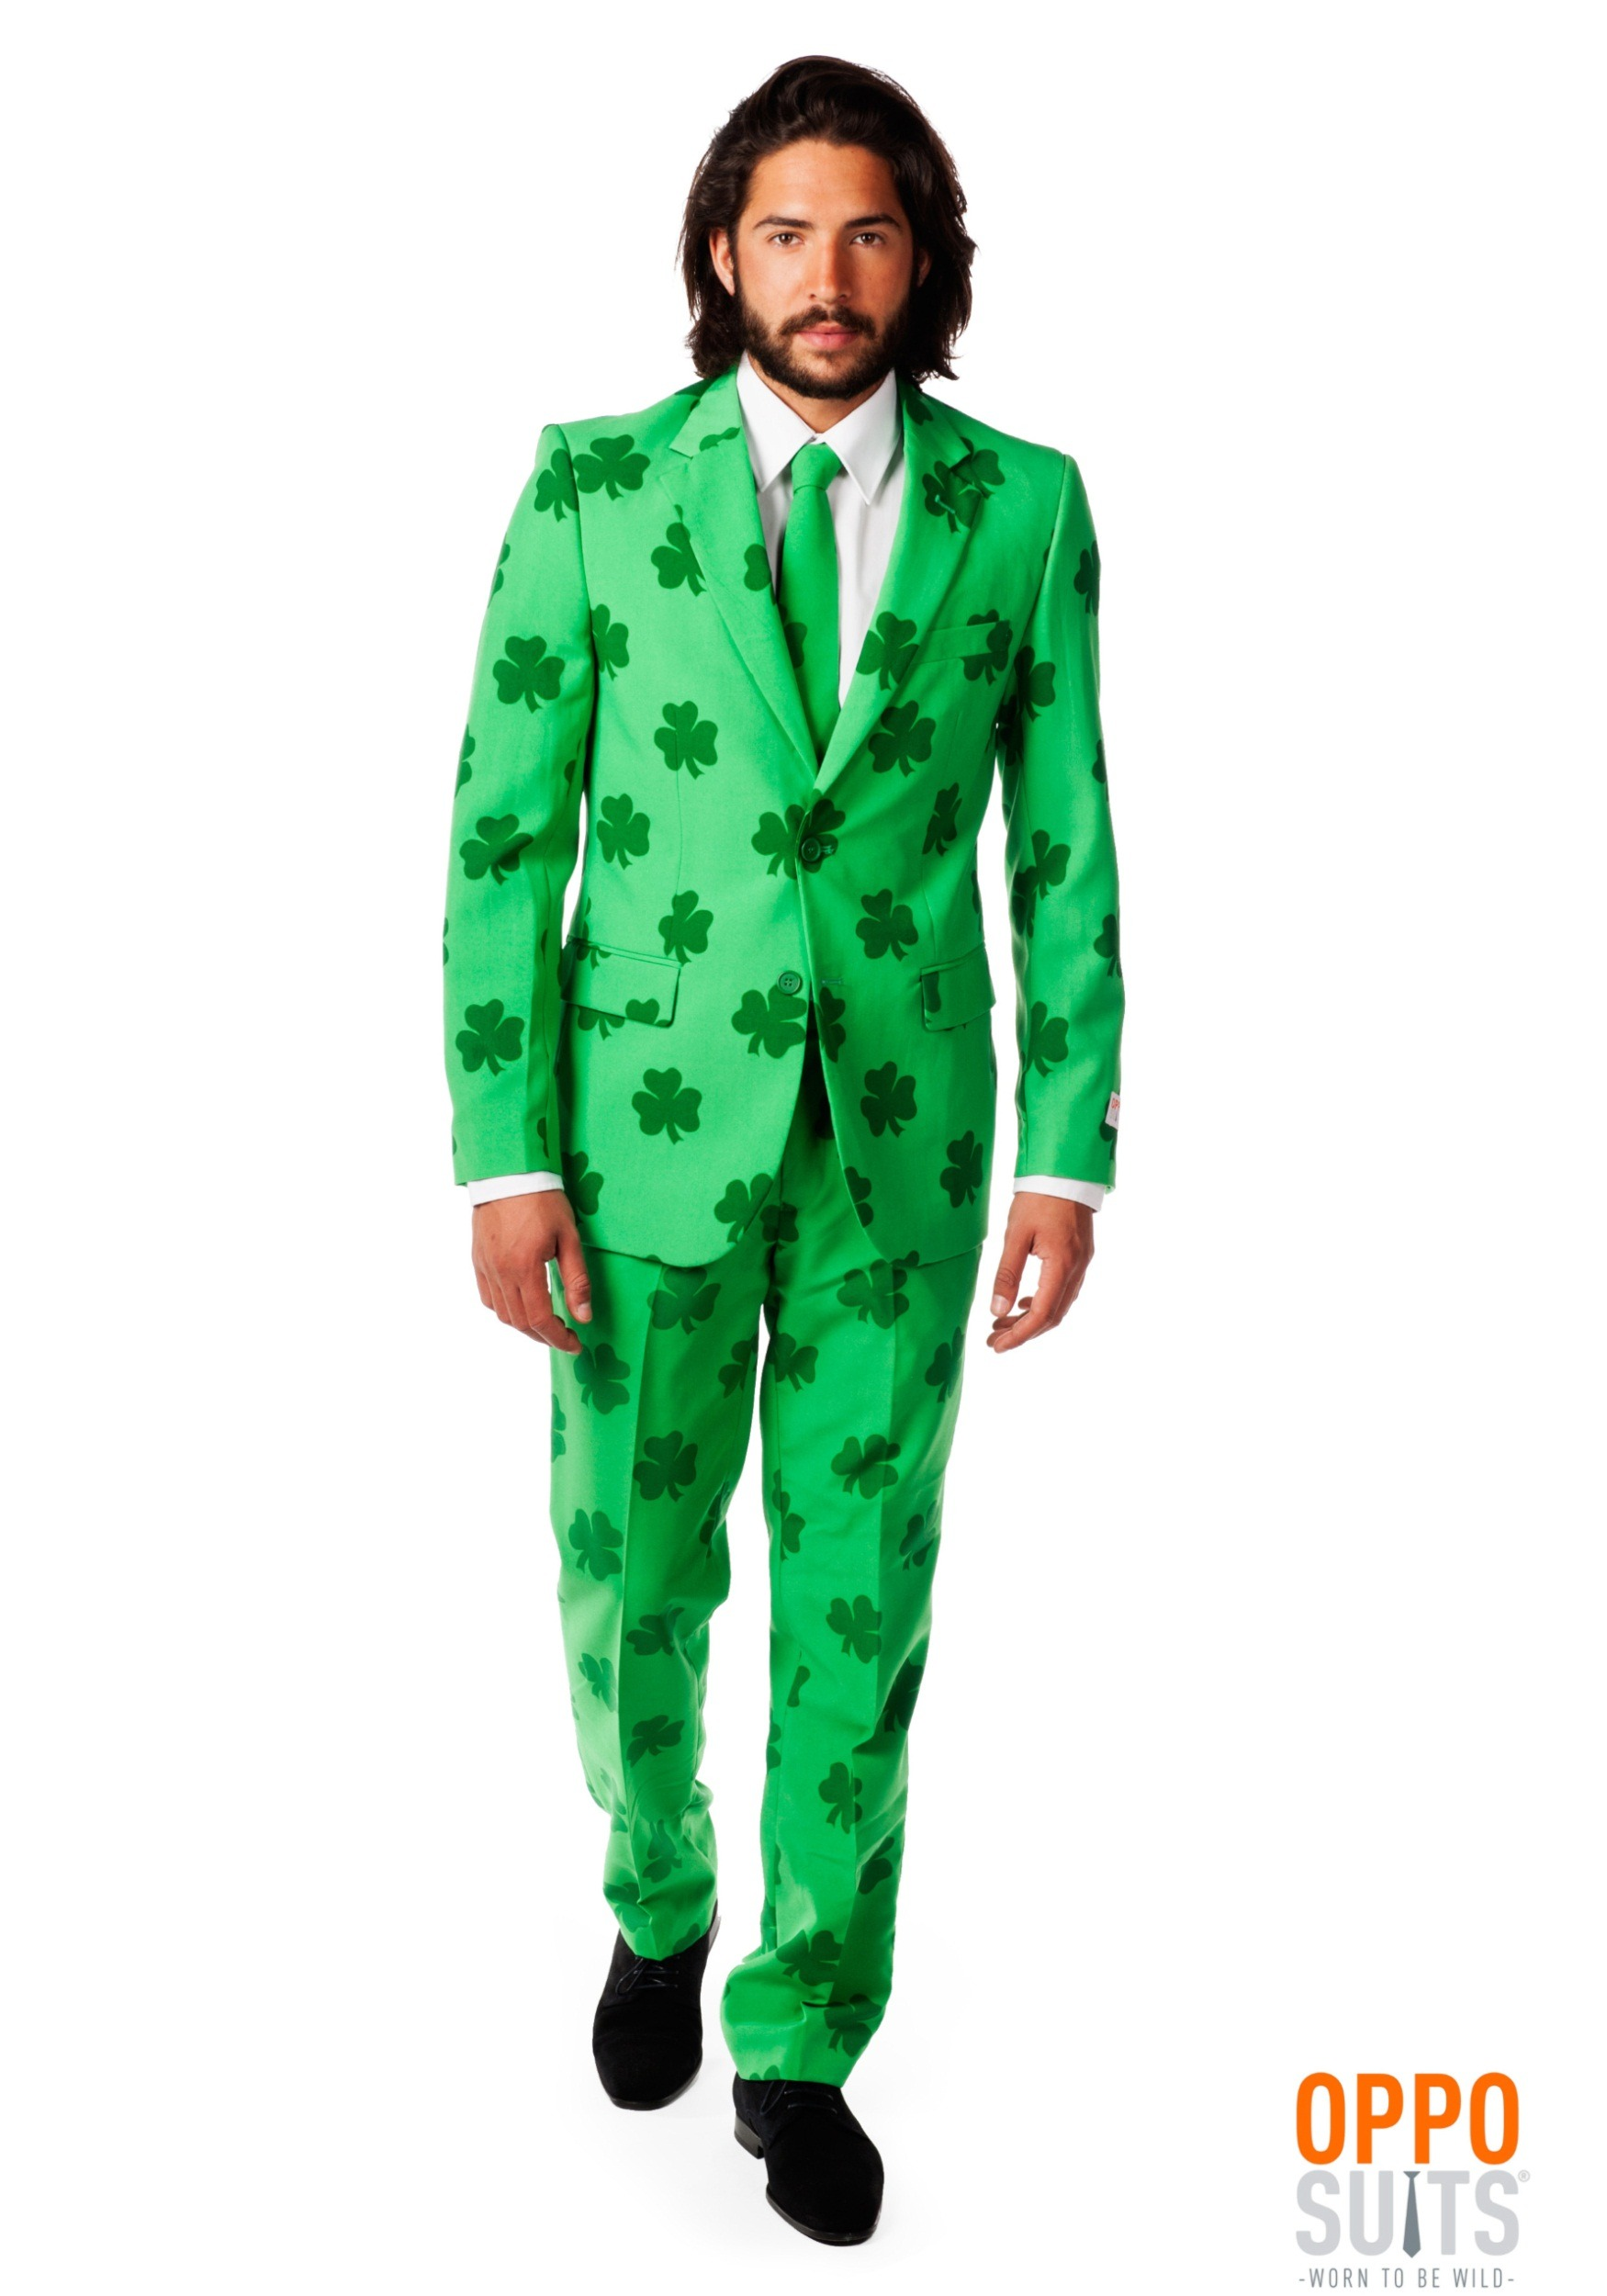 a2a0a31a1ea406 Mens OppoSuits Green St. Patrick's Day Costume Suit